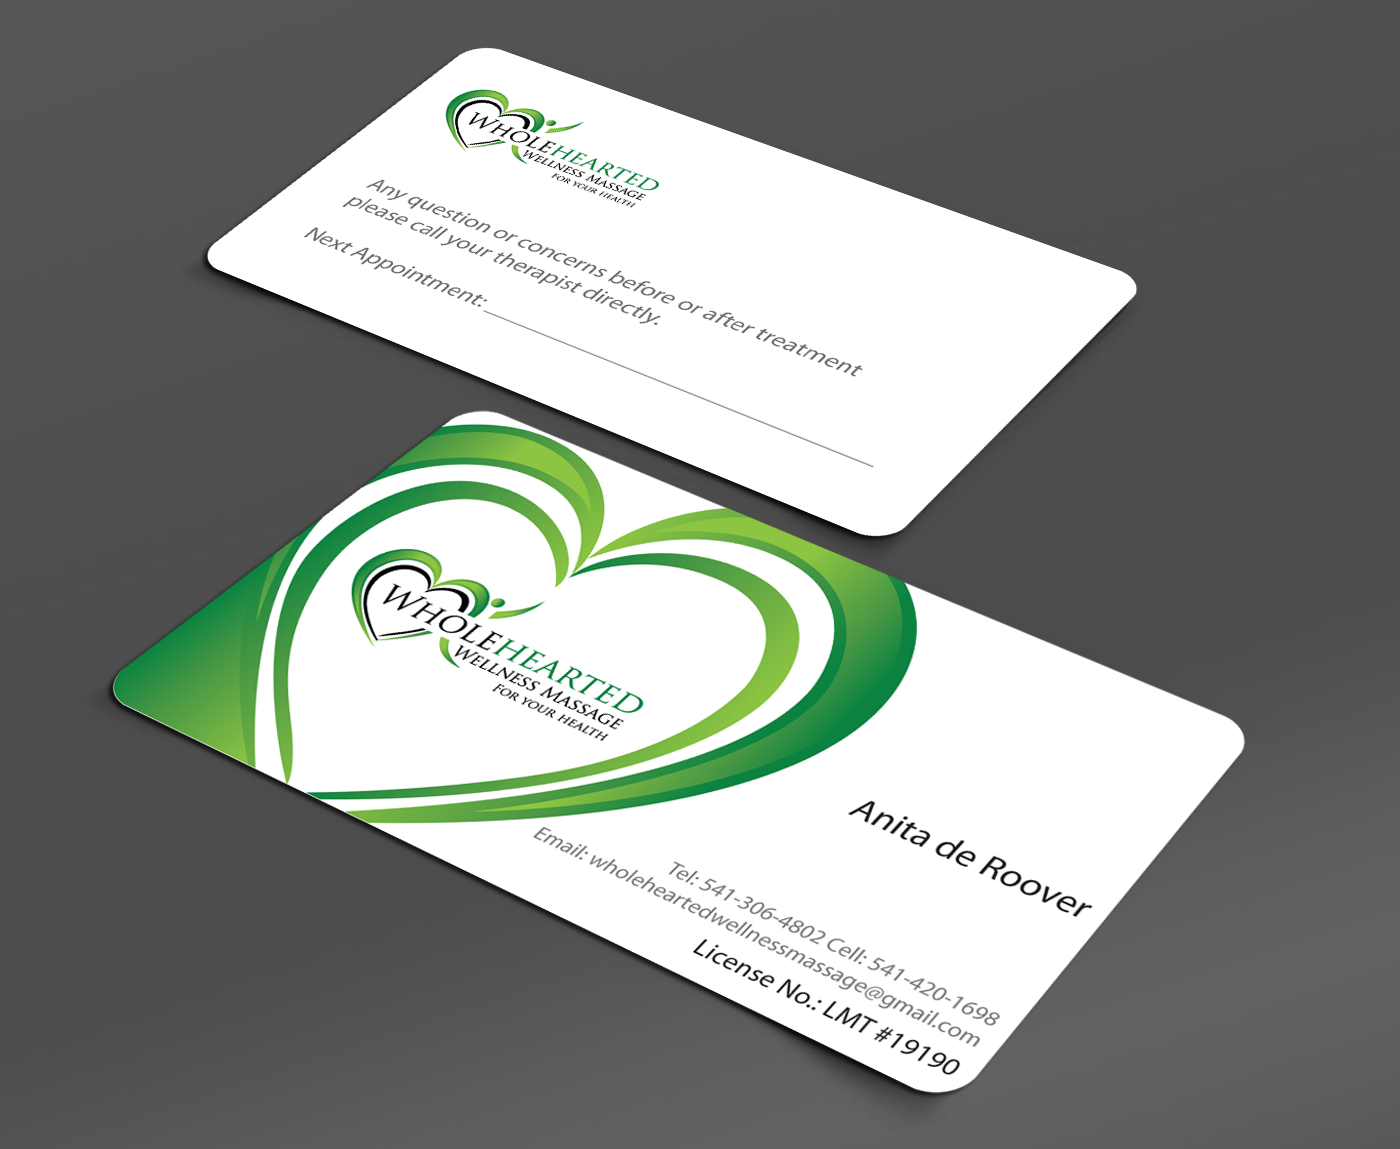 business cards for wellness massage practice - Massage Therapy